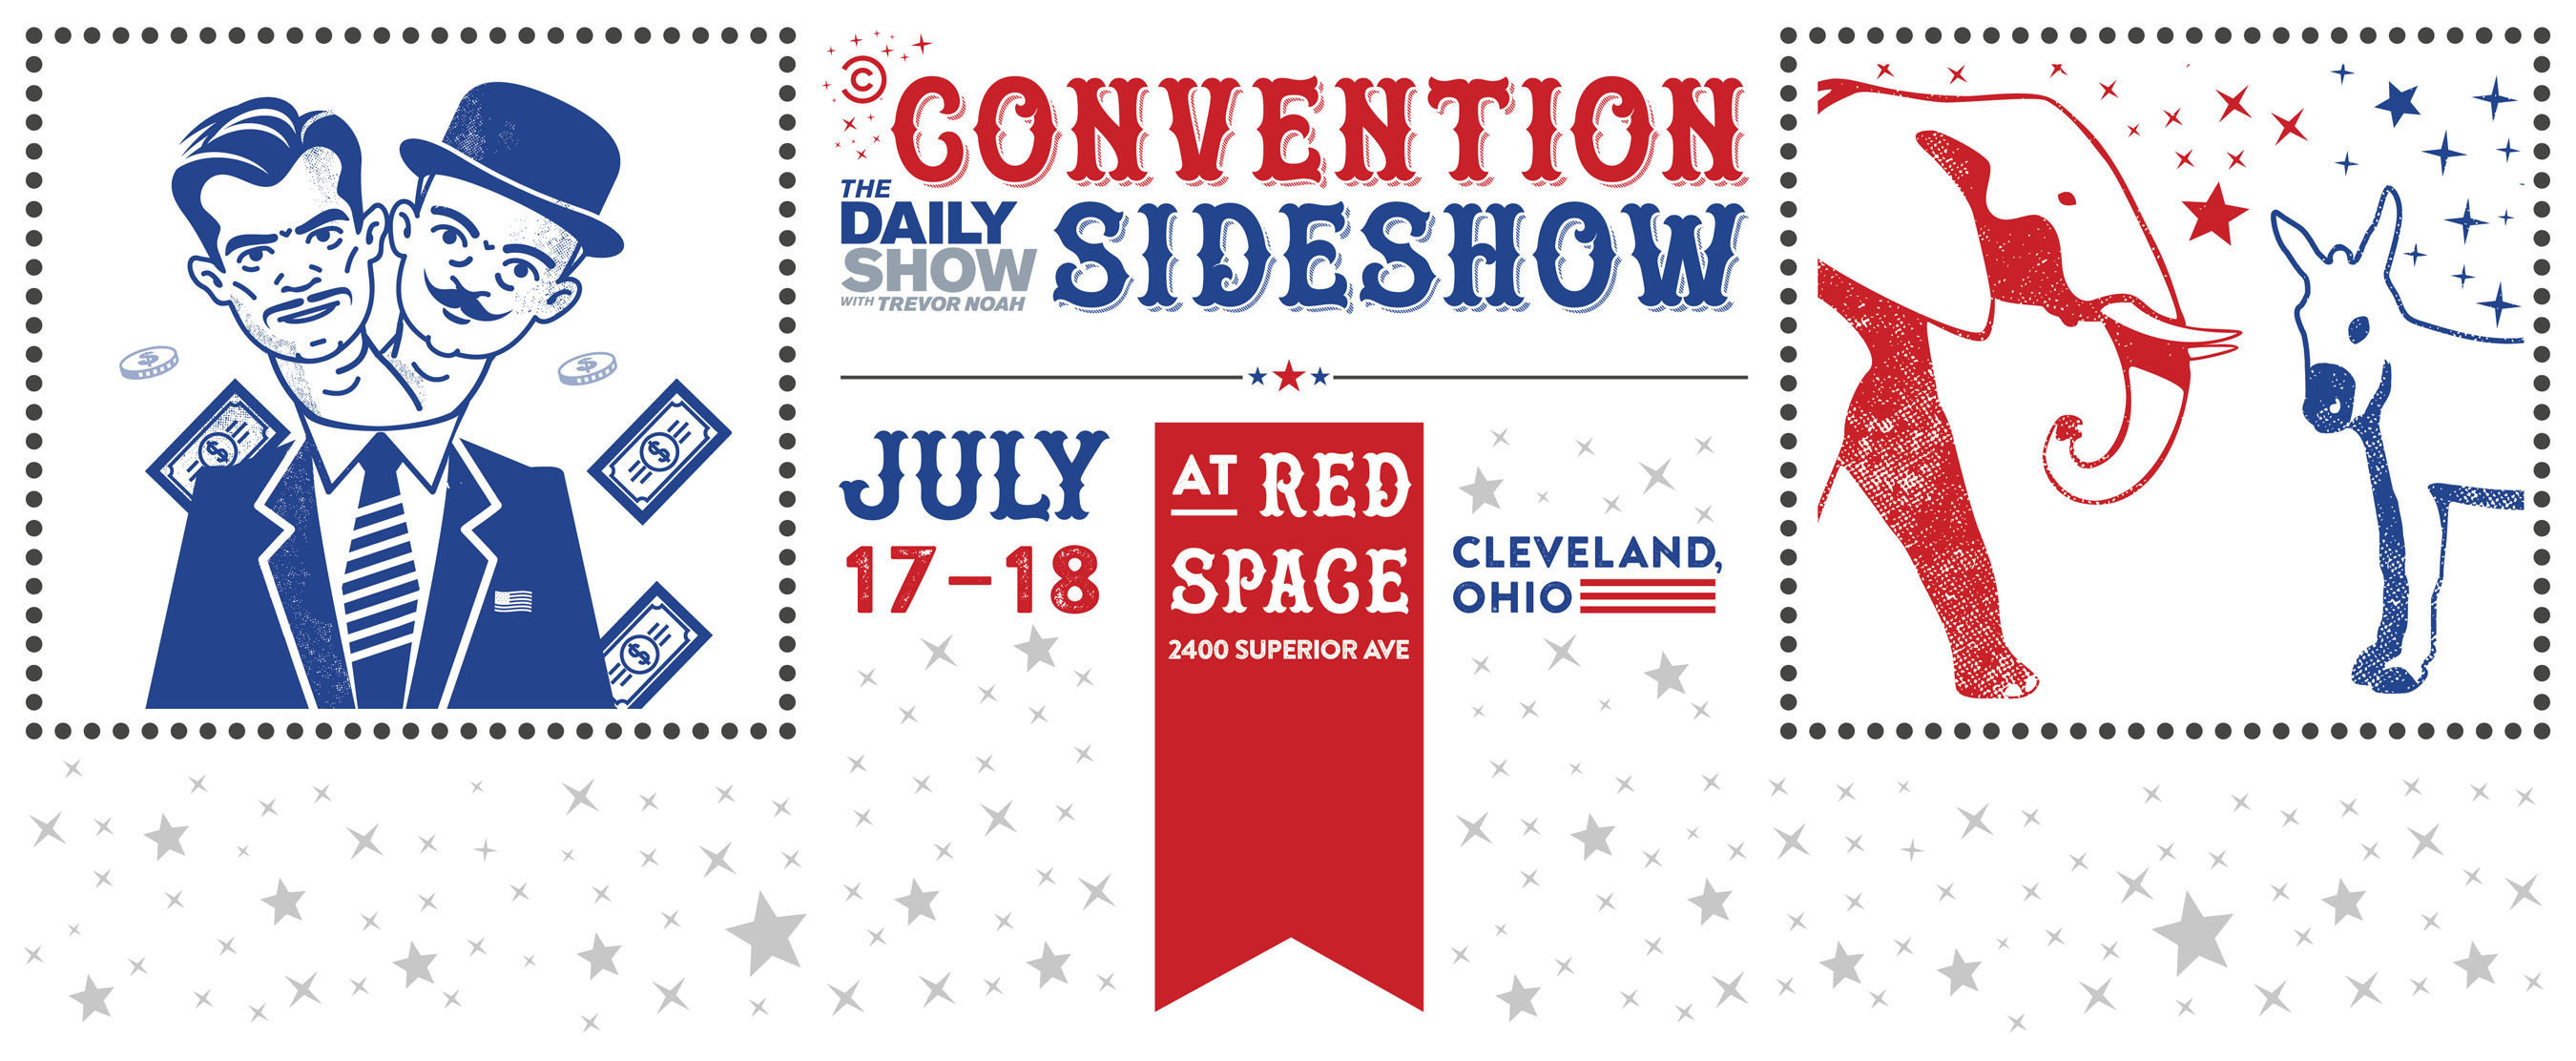 "Comedy Central's ""The Daily Show Convention Sideshow"" -- Exclusive press preview available on Sunday, July 17 from 11:00am-noon for media to experience and cover the event before it officially opens to the public at noon."